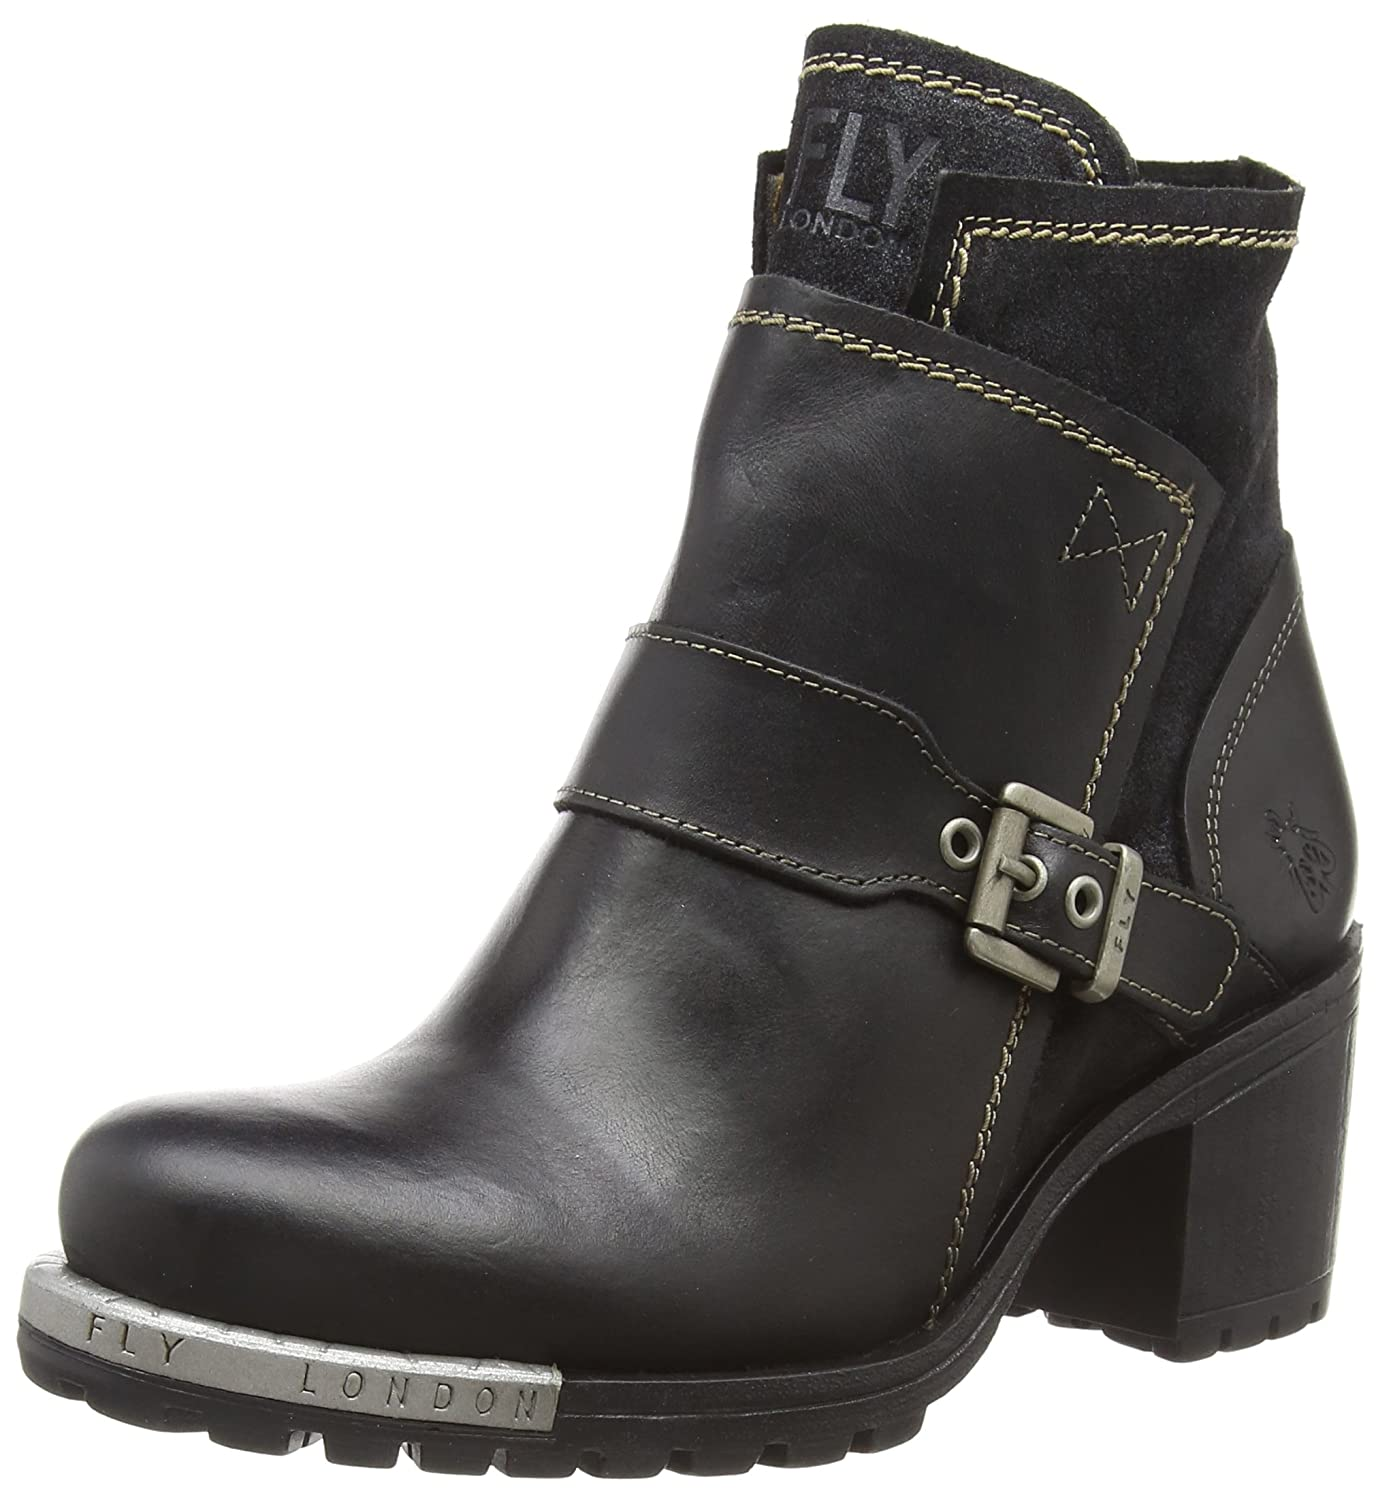 FLY London Damen Labe302fly Kurzschaft Stiefel